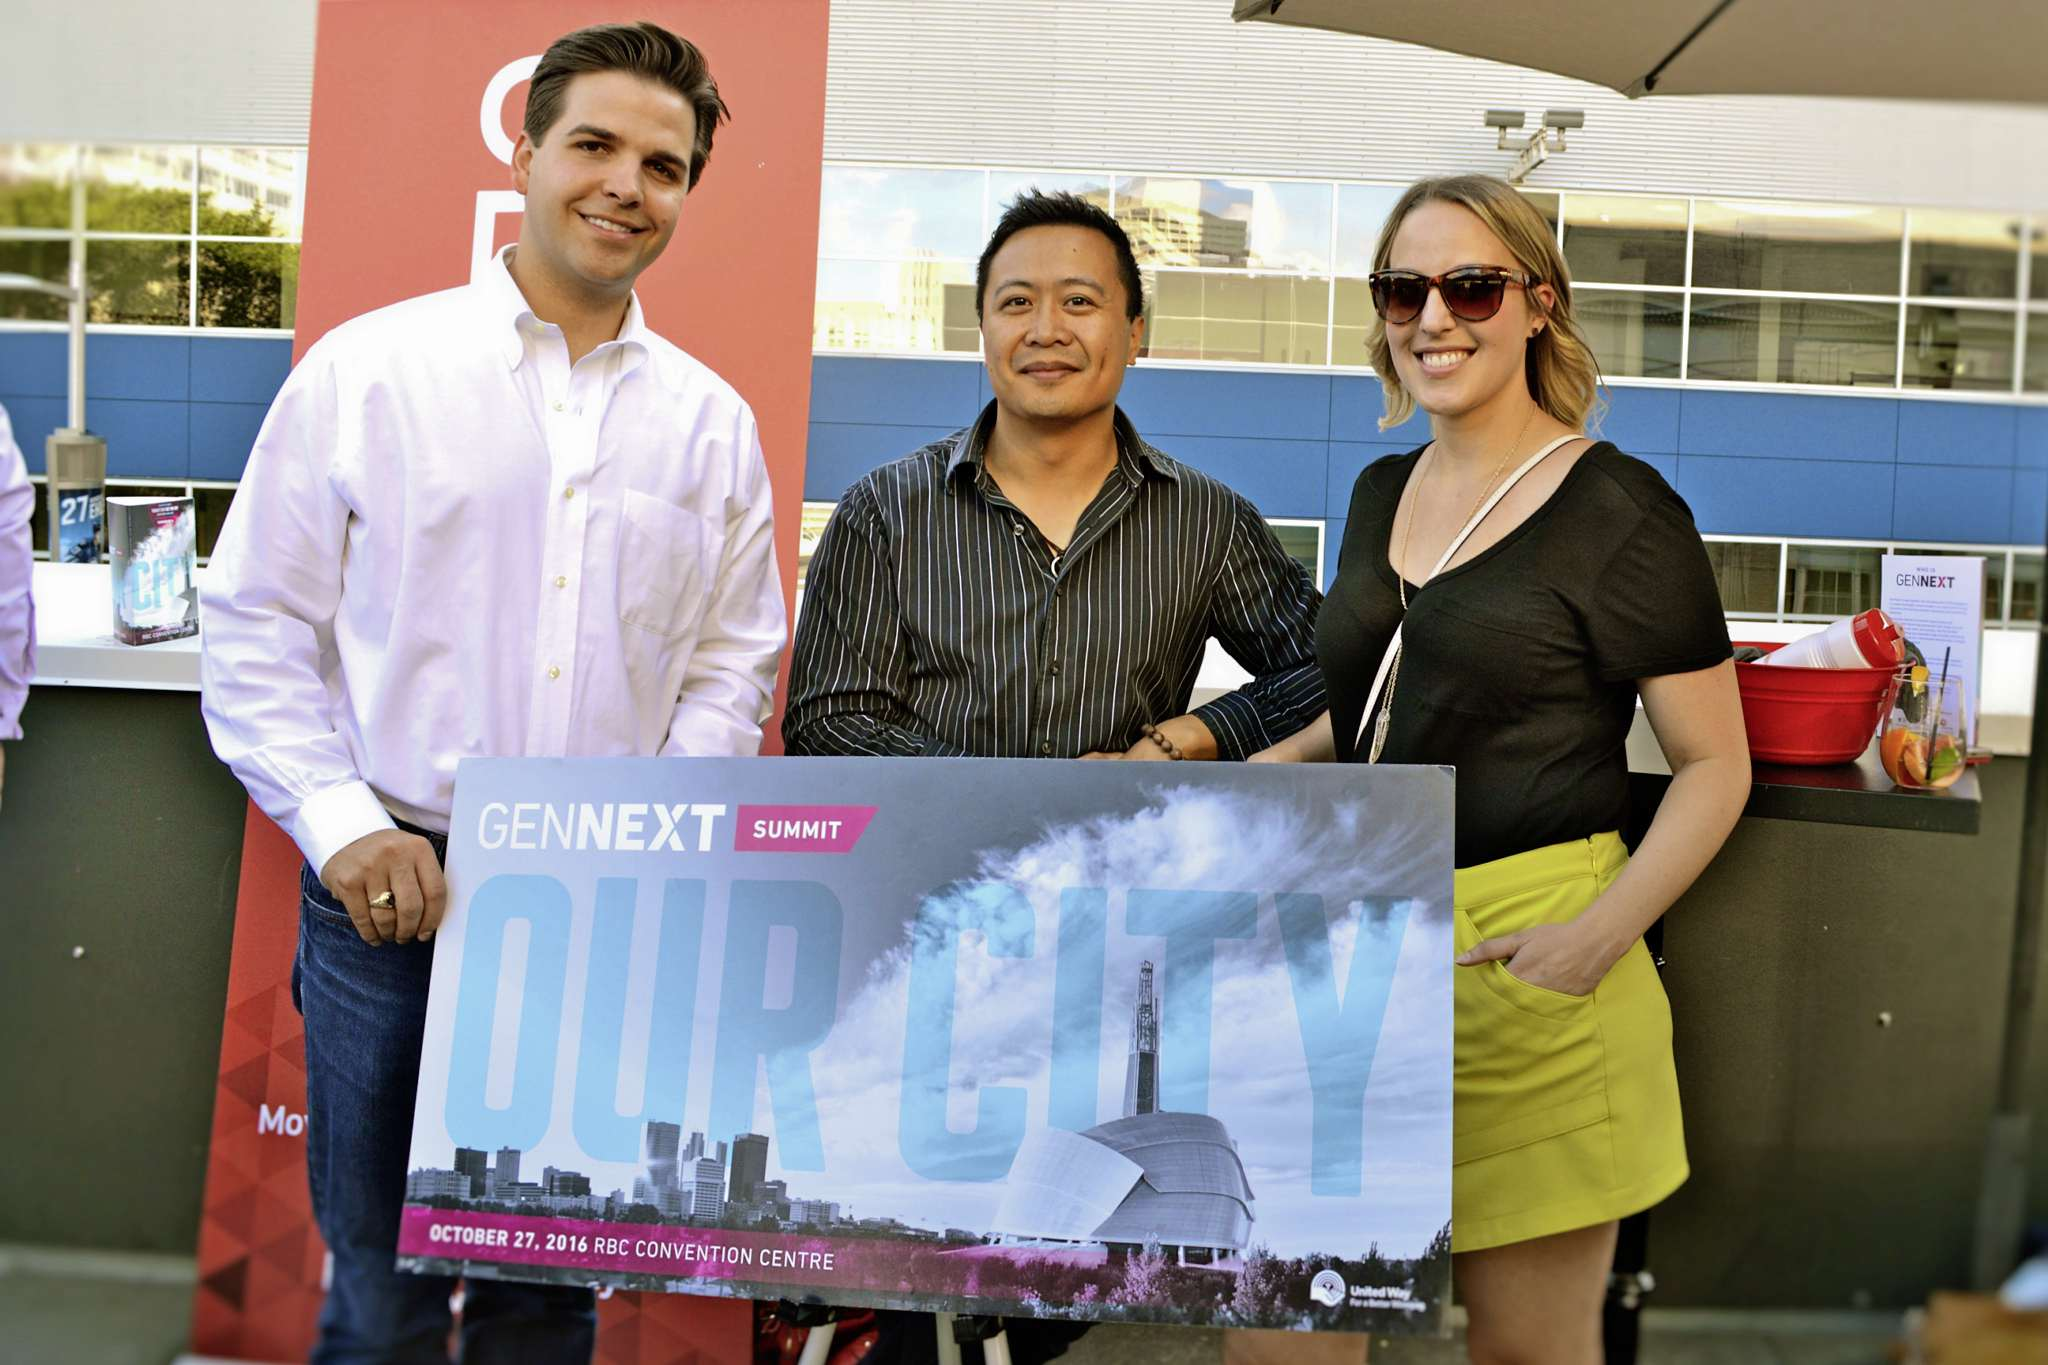 From left: Adam Smoluk, Paul Lacap, and Jane Helbrecht are all looking forward to the upcoming GenNext Summit, which will be held on Oct. 27.